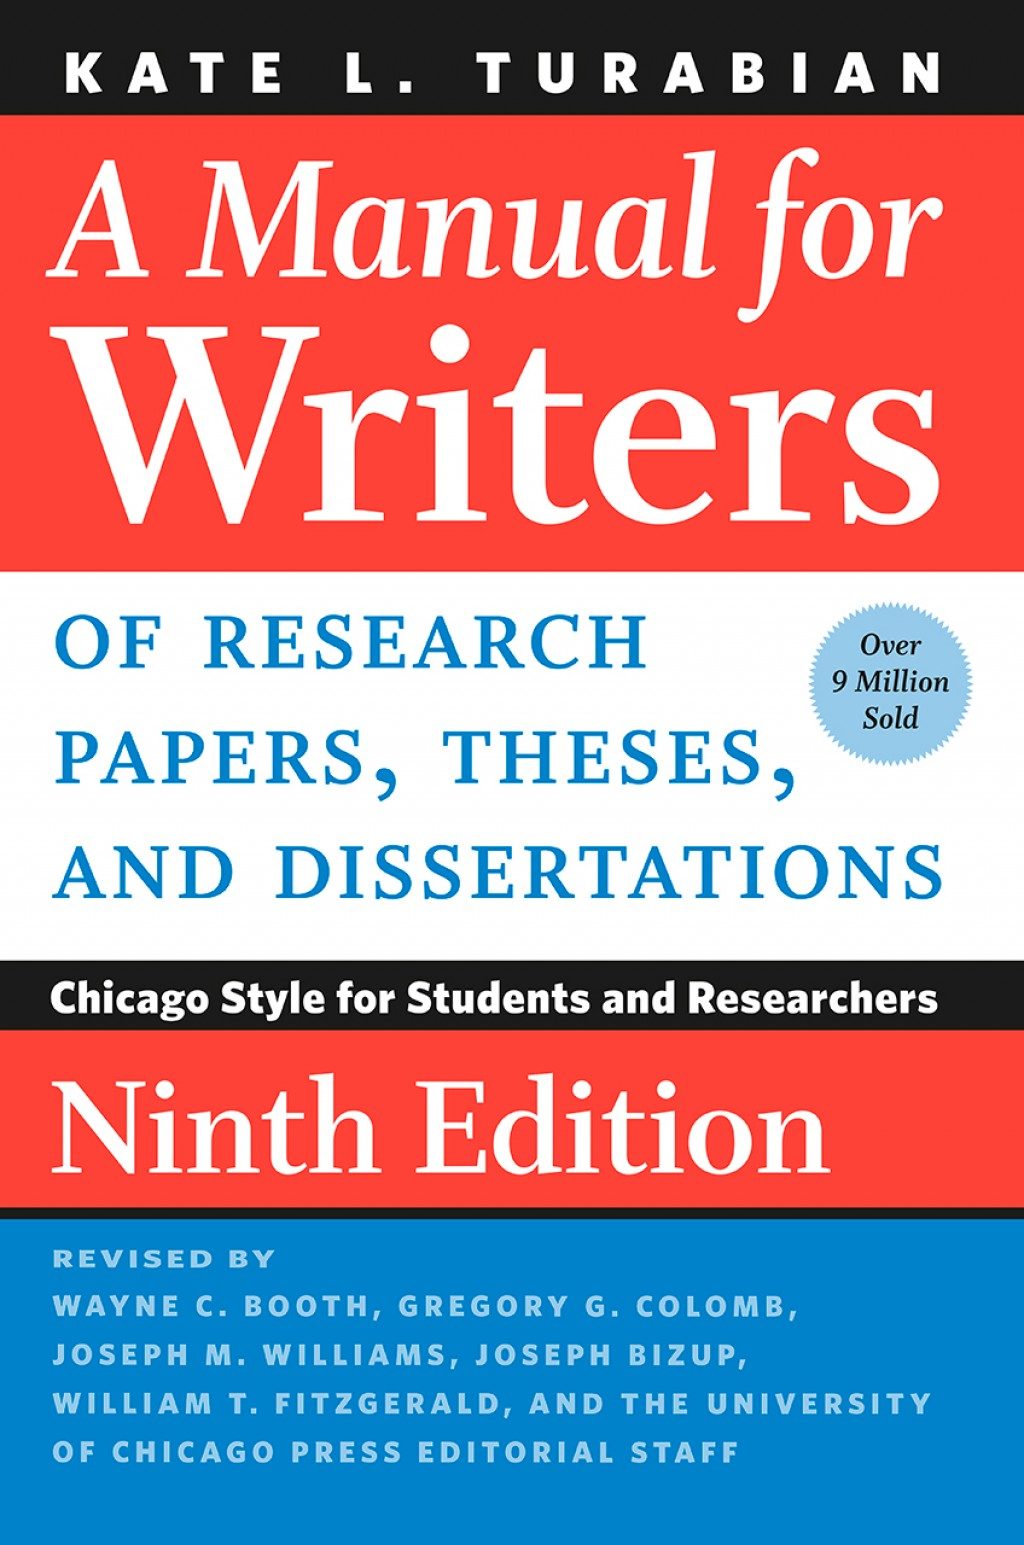 005 Research Paper Manual For Writers Of Papers Theses And Dissertations 8th Imposing 13 Large